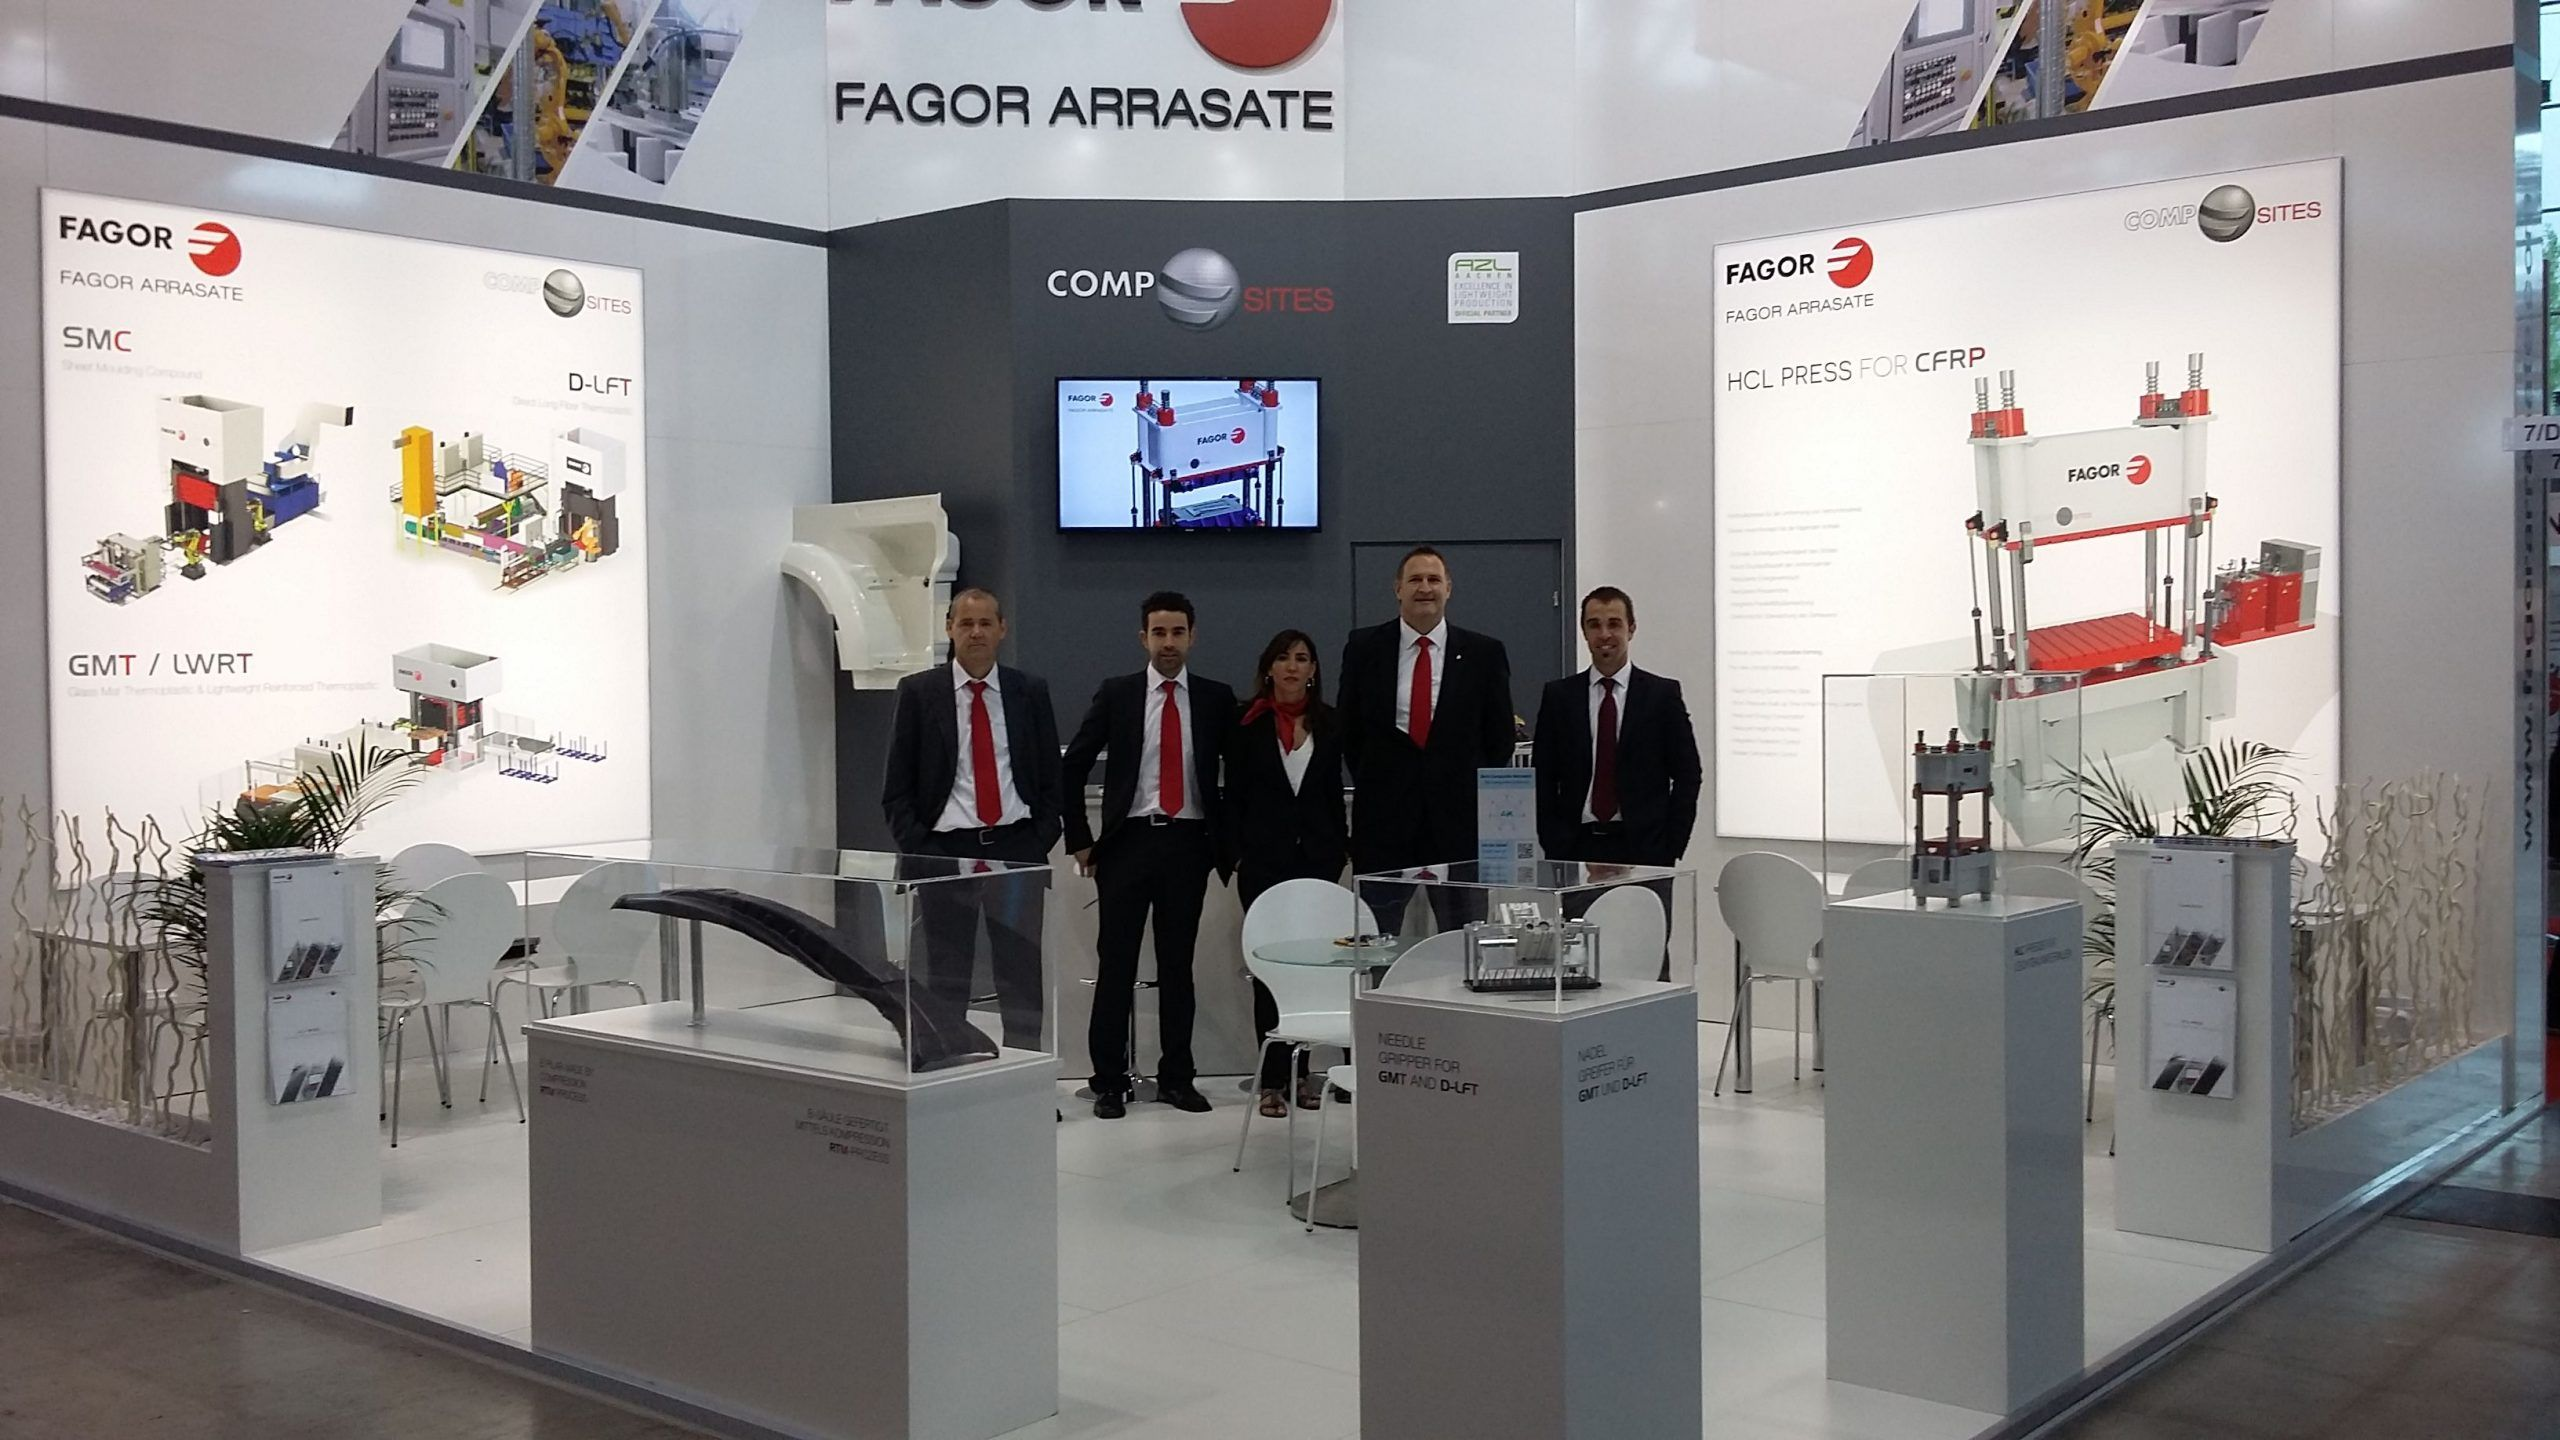 Fagor Arrasate event: IN GERMANY, FAGOR ARRASATE SHOWS ITS KNOW-HOW IN THE COMPOSITES' FIELD